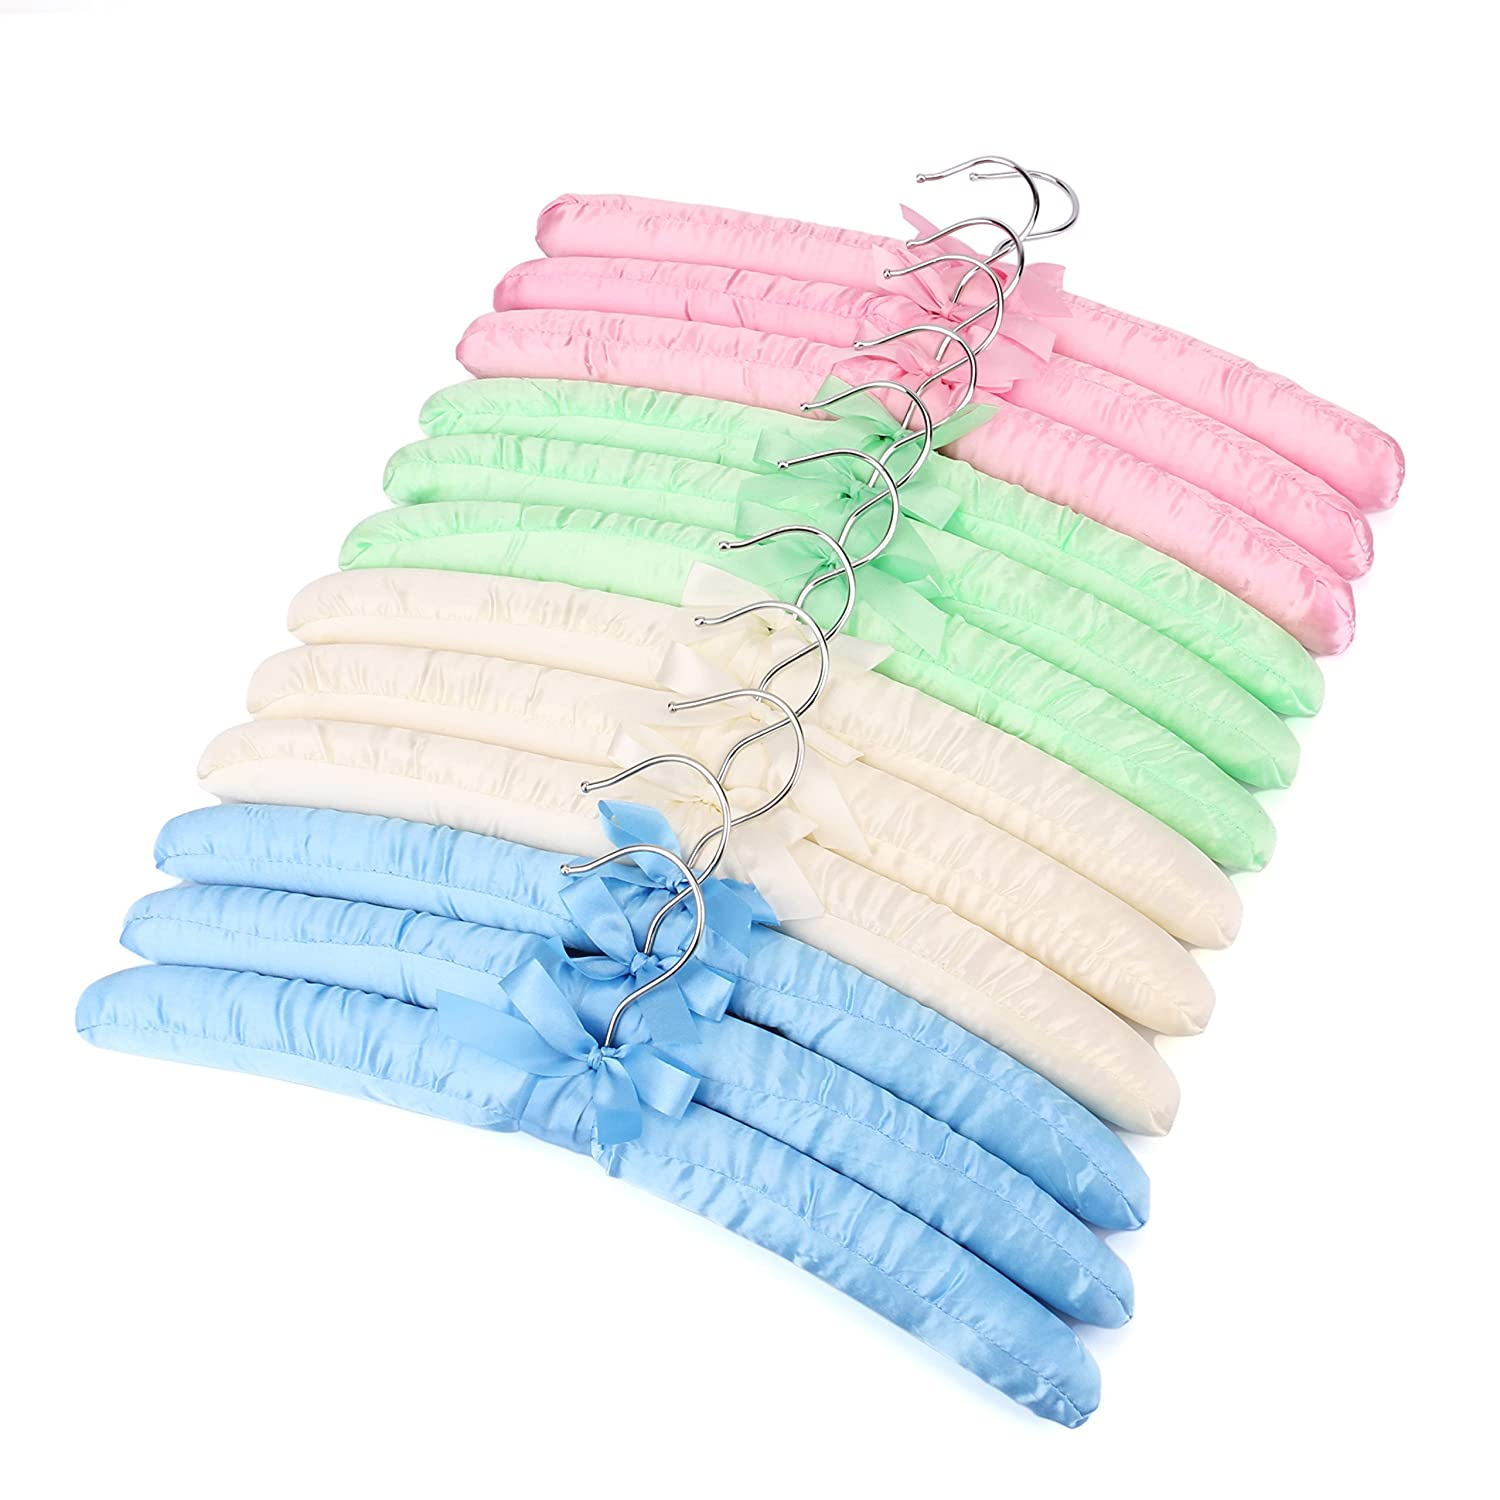 Tosnail Non-slip Satin Padded Hangers Collection Shirt/blouse Hangers - Pink, Blue, Green, White (12) FBA_T-PYJ